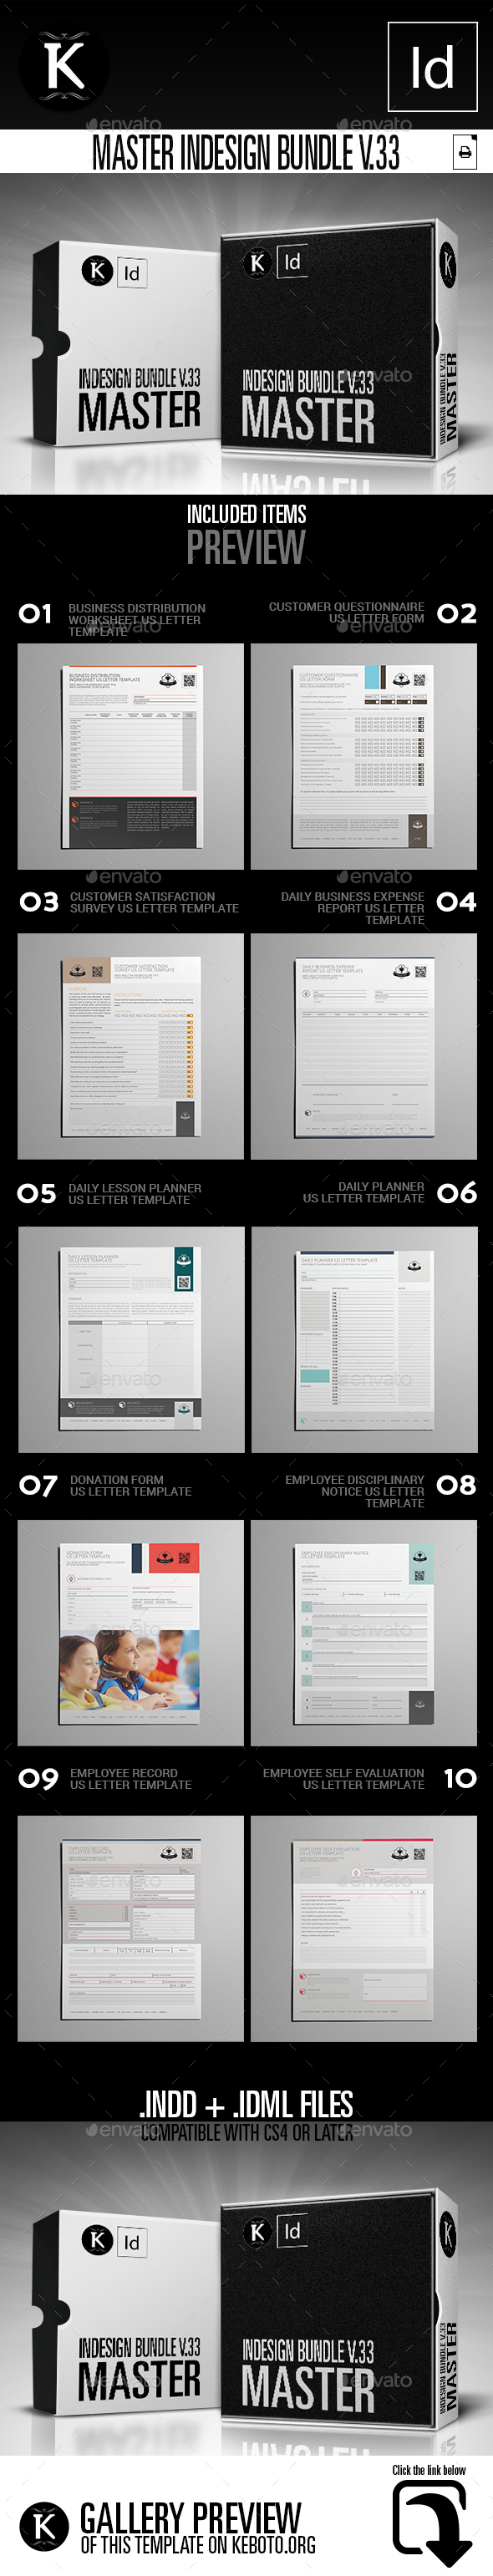 GraphicRiver Master inDesign Bundle v.33 21076081